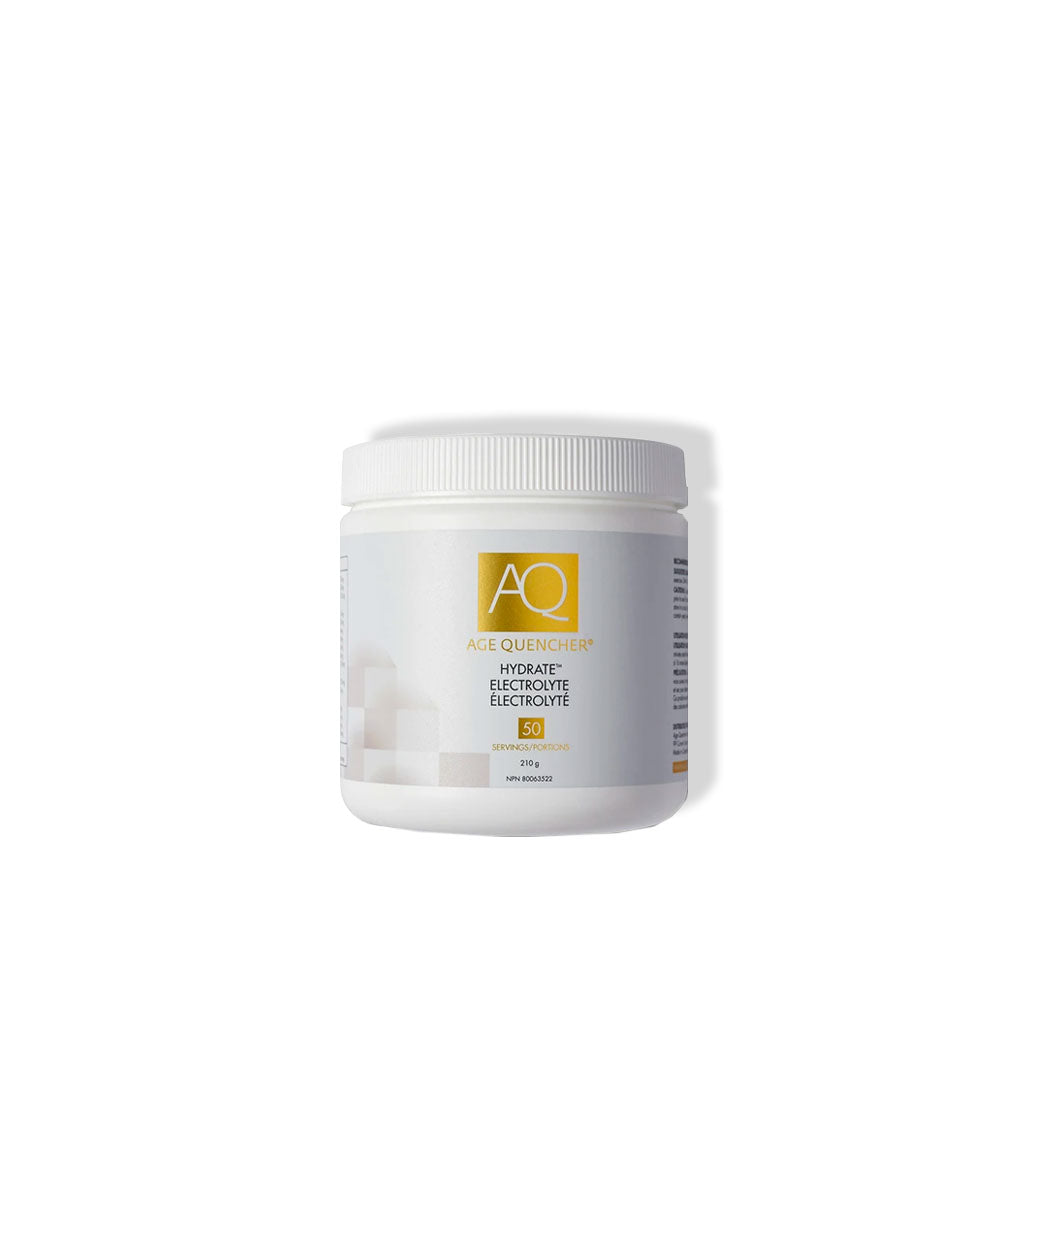 Hydrate Powder - LEMON LAINE - Energy Boosters - Age Quencher